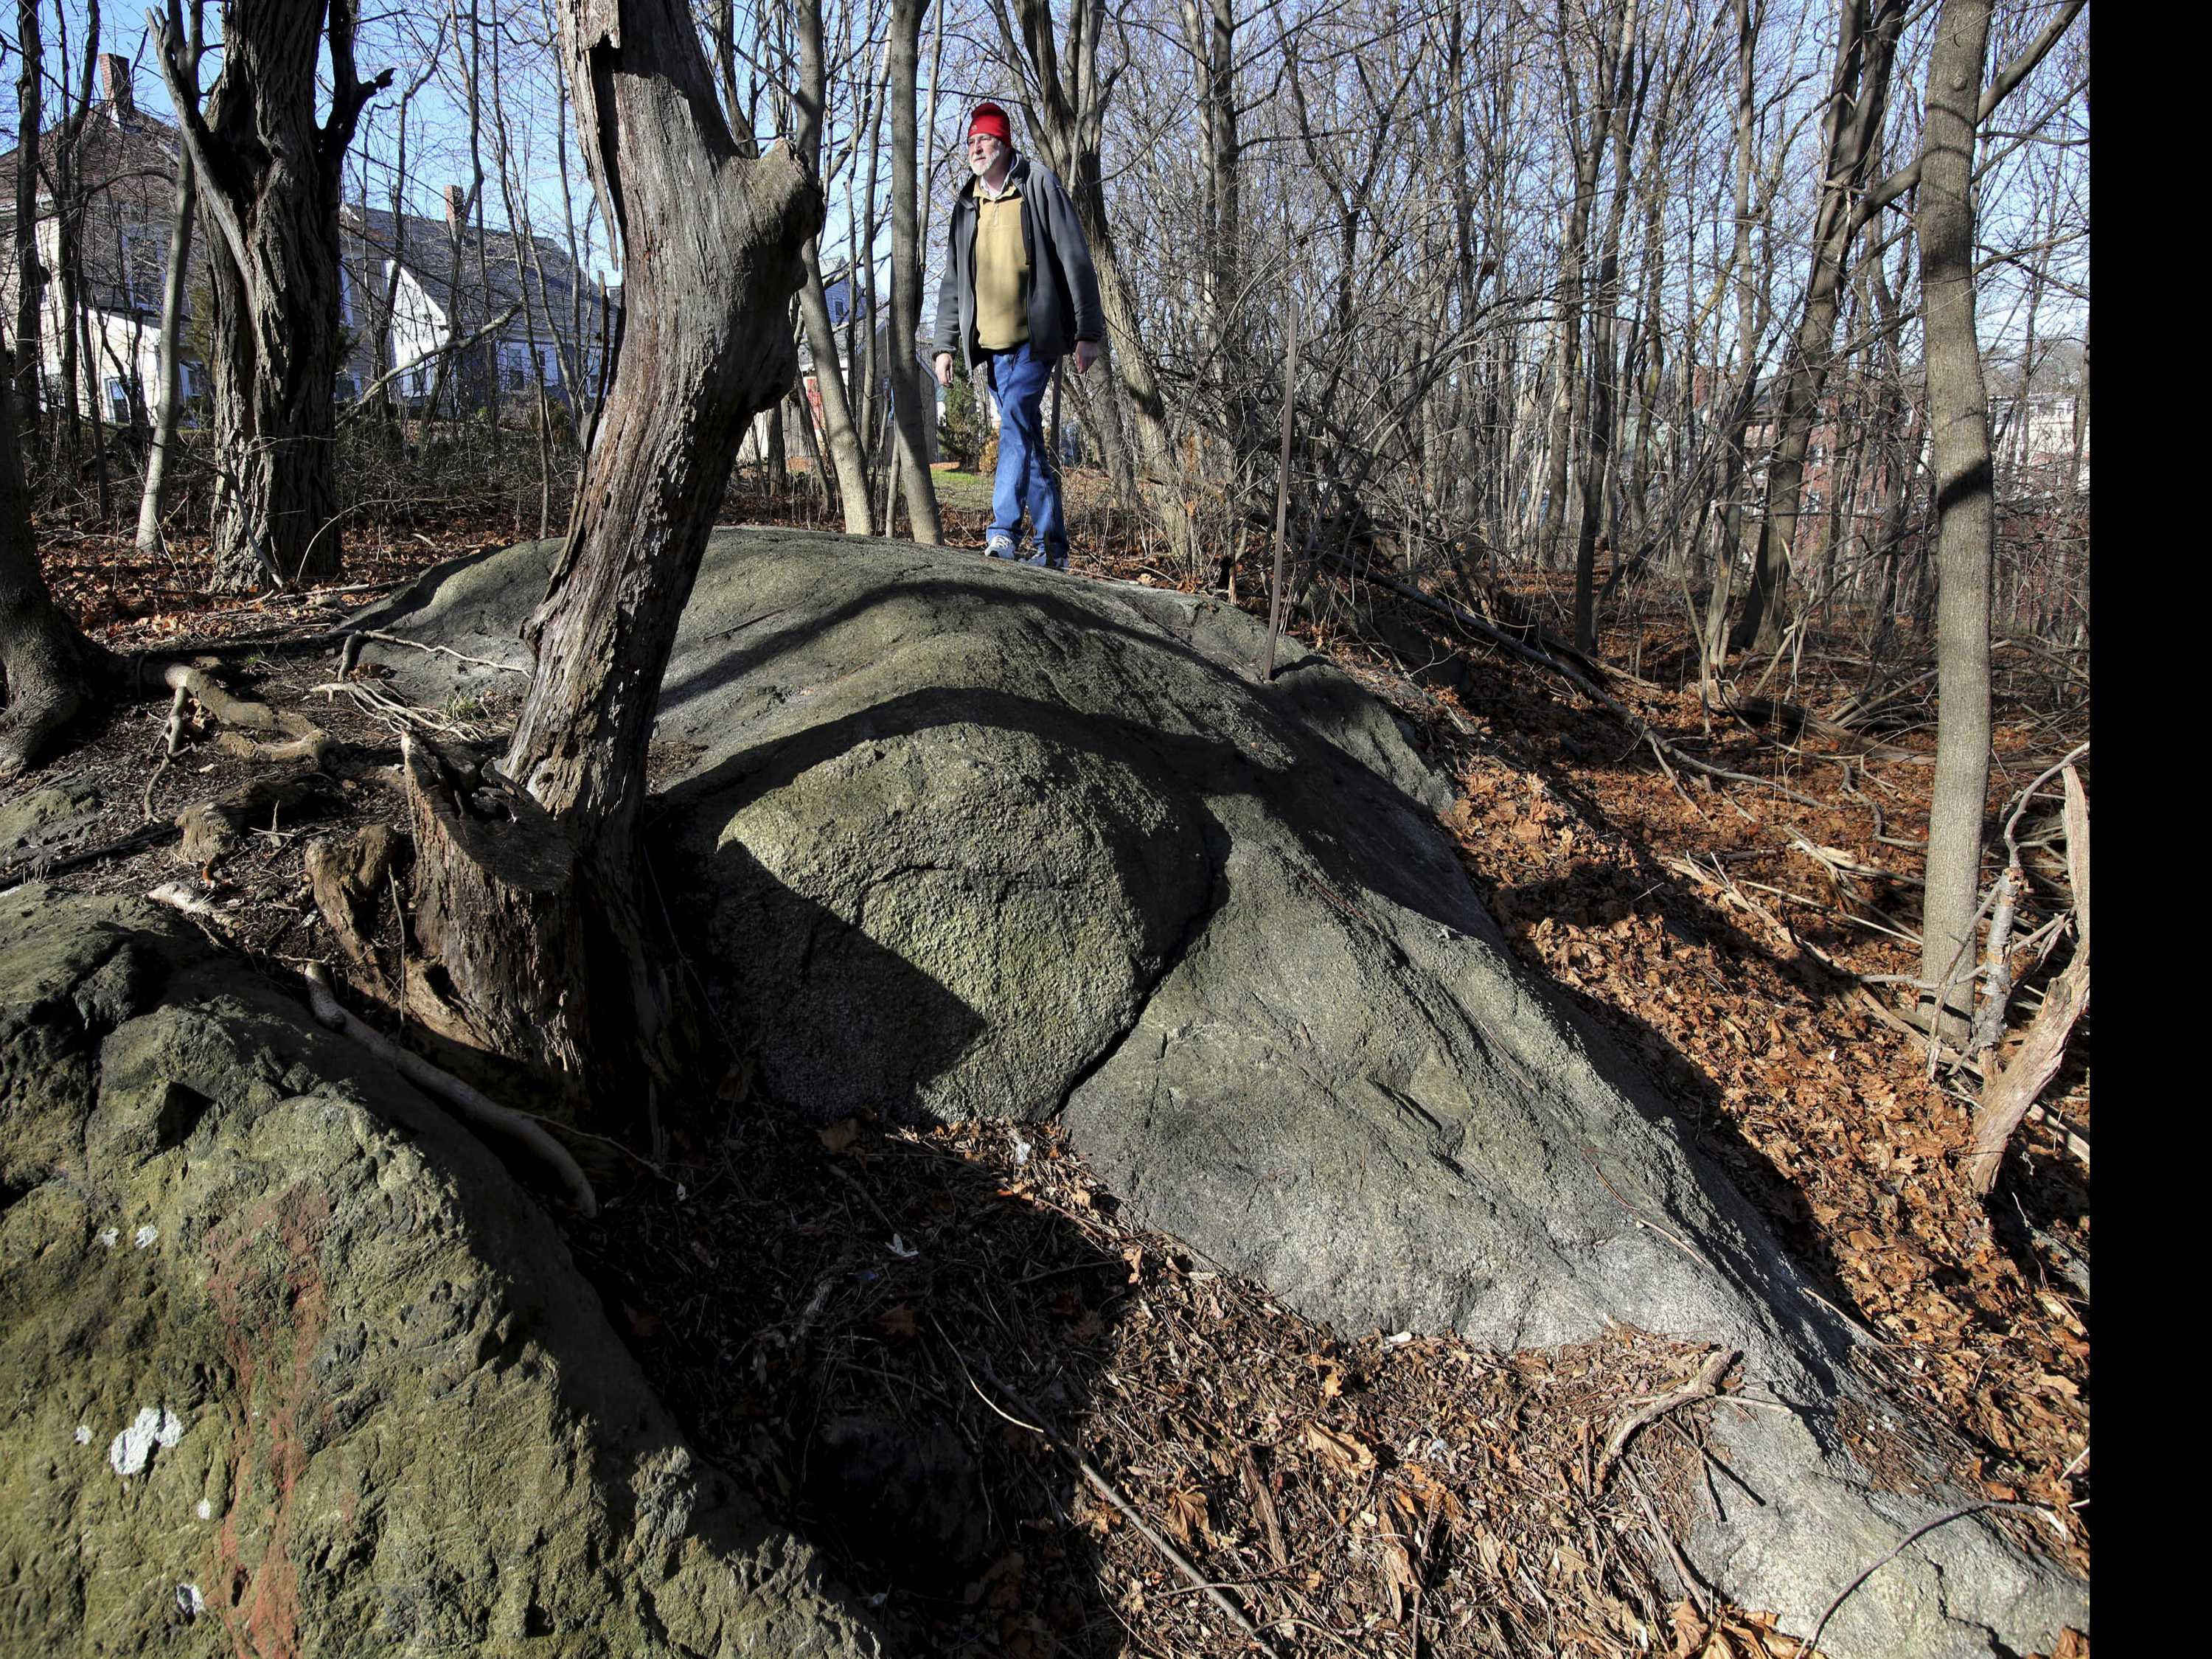 Five Killed in Salem Witch Hunt Remembered on 325th Anniversary